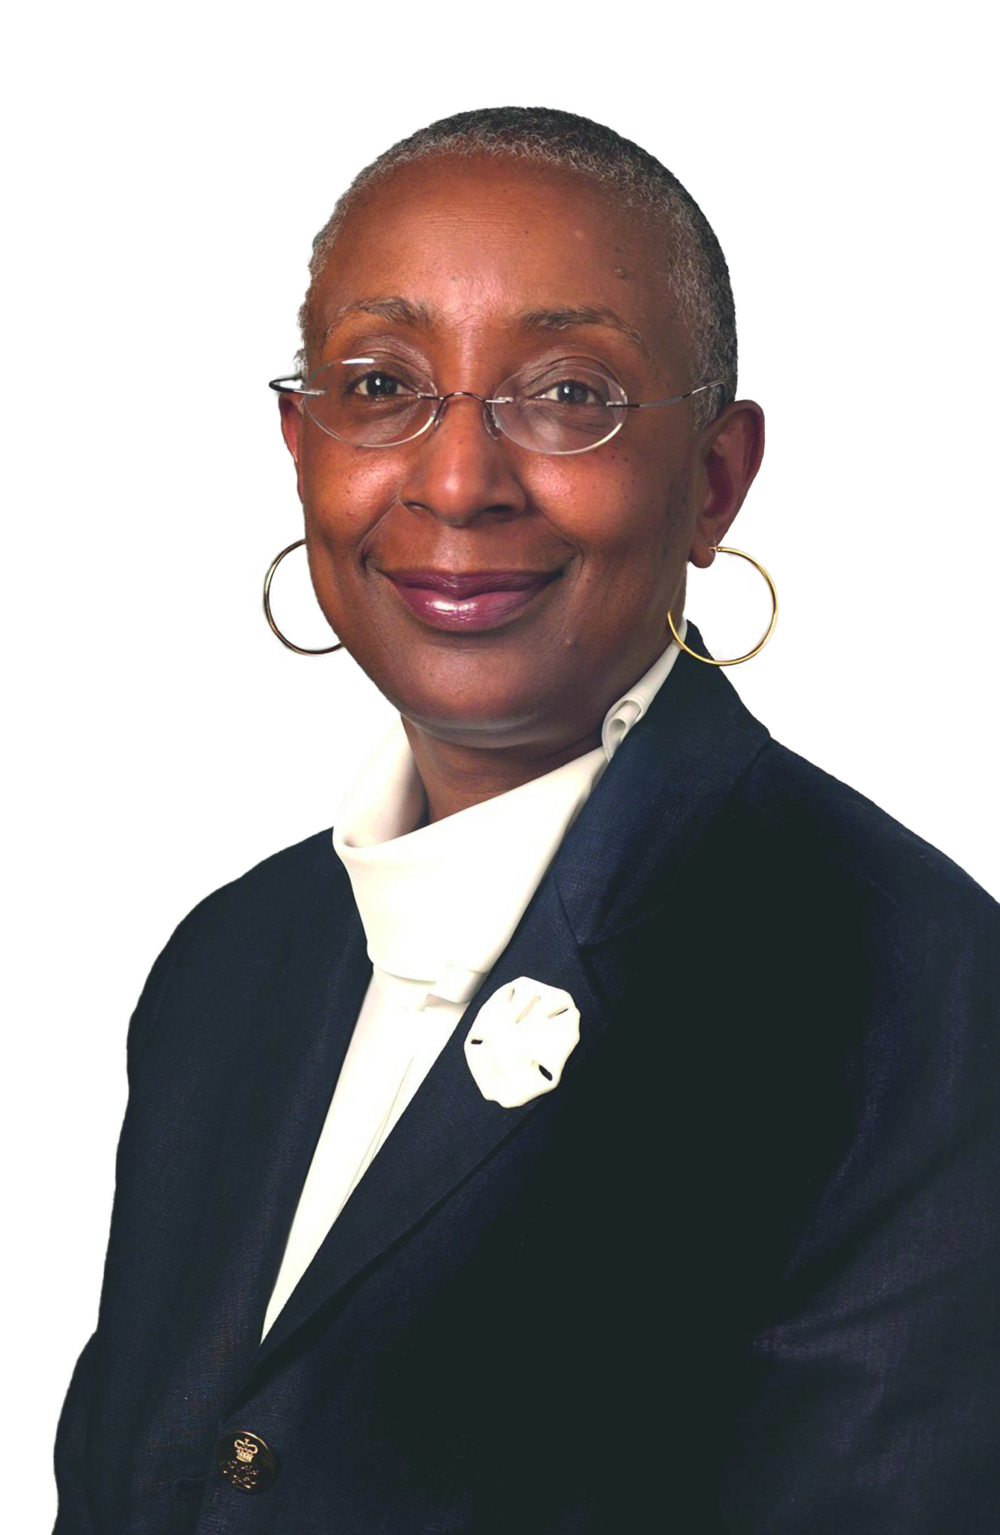 Angela Gittens, Director General of Airport Council International (ACI).